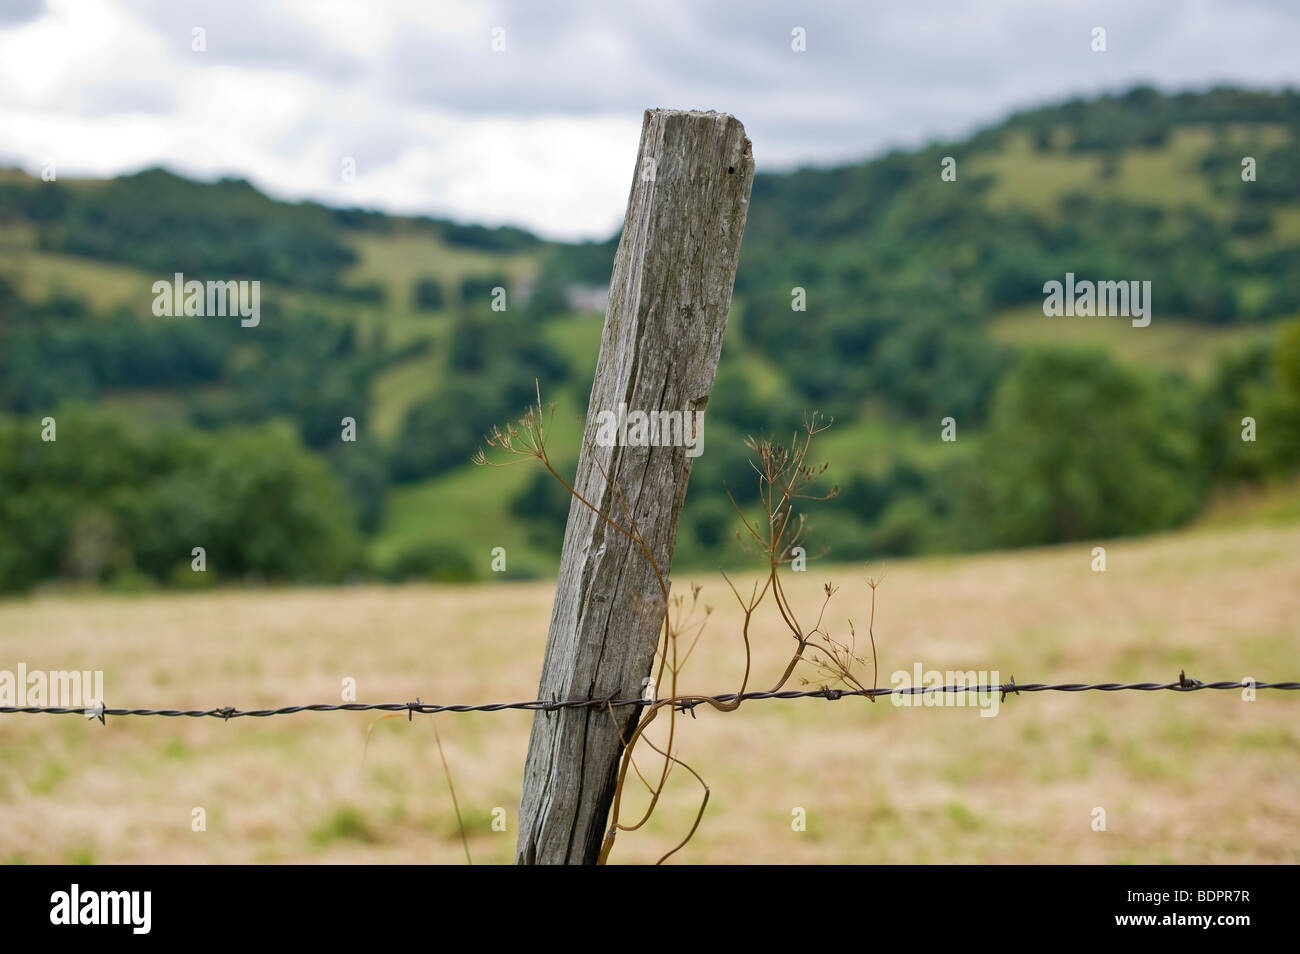 fence post - Stock Image